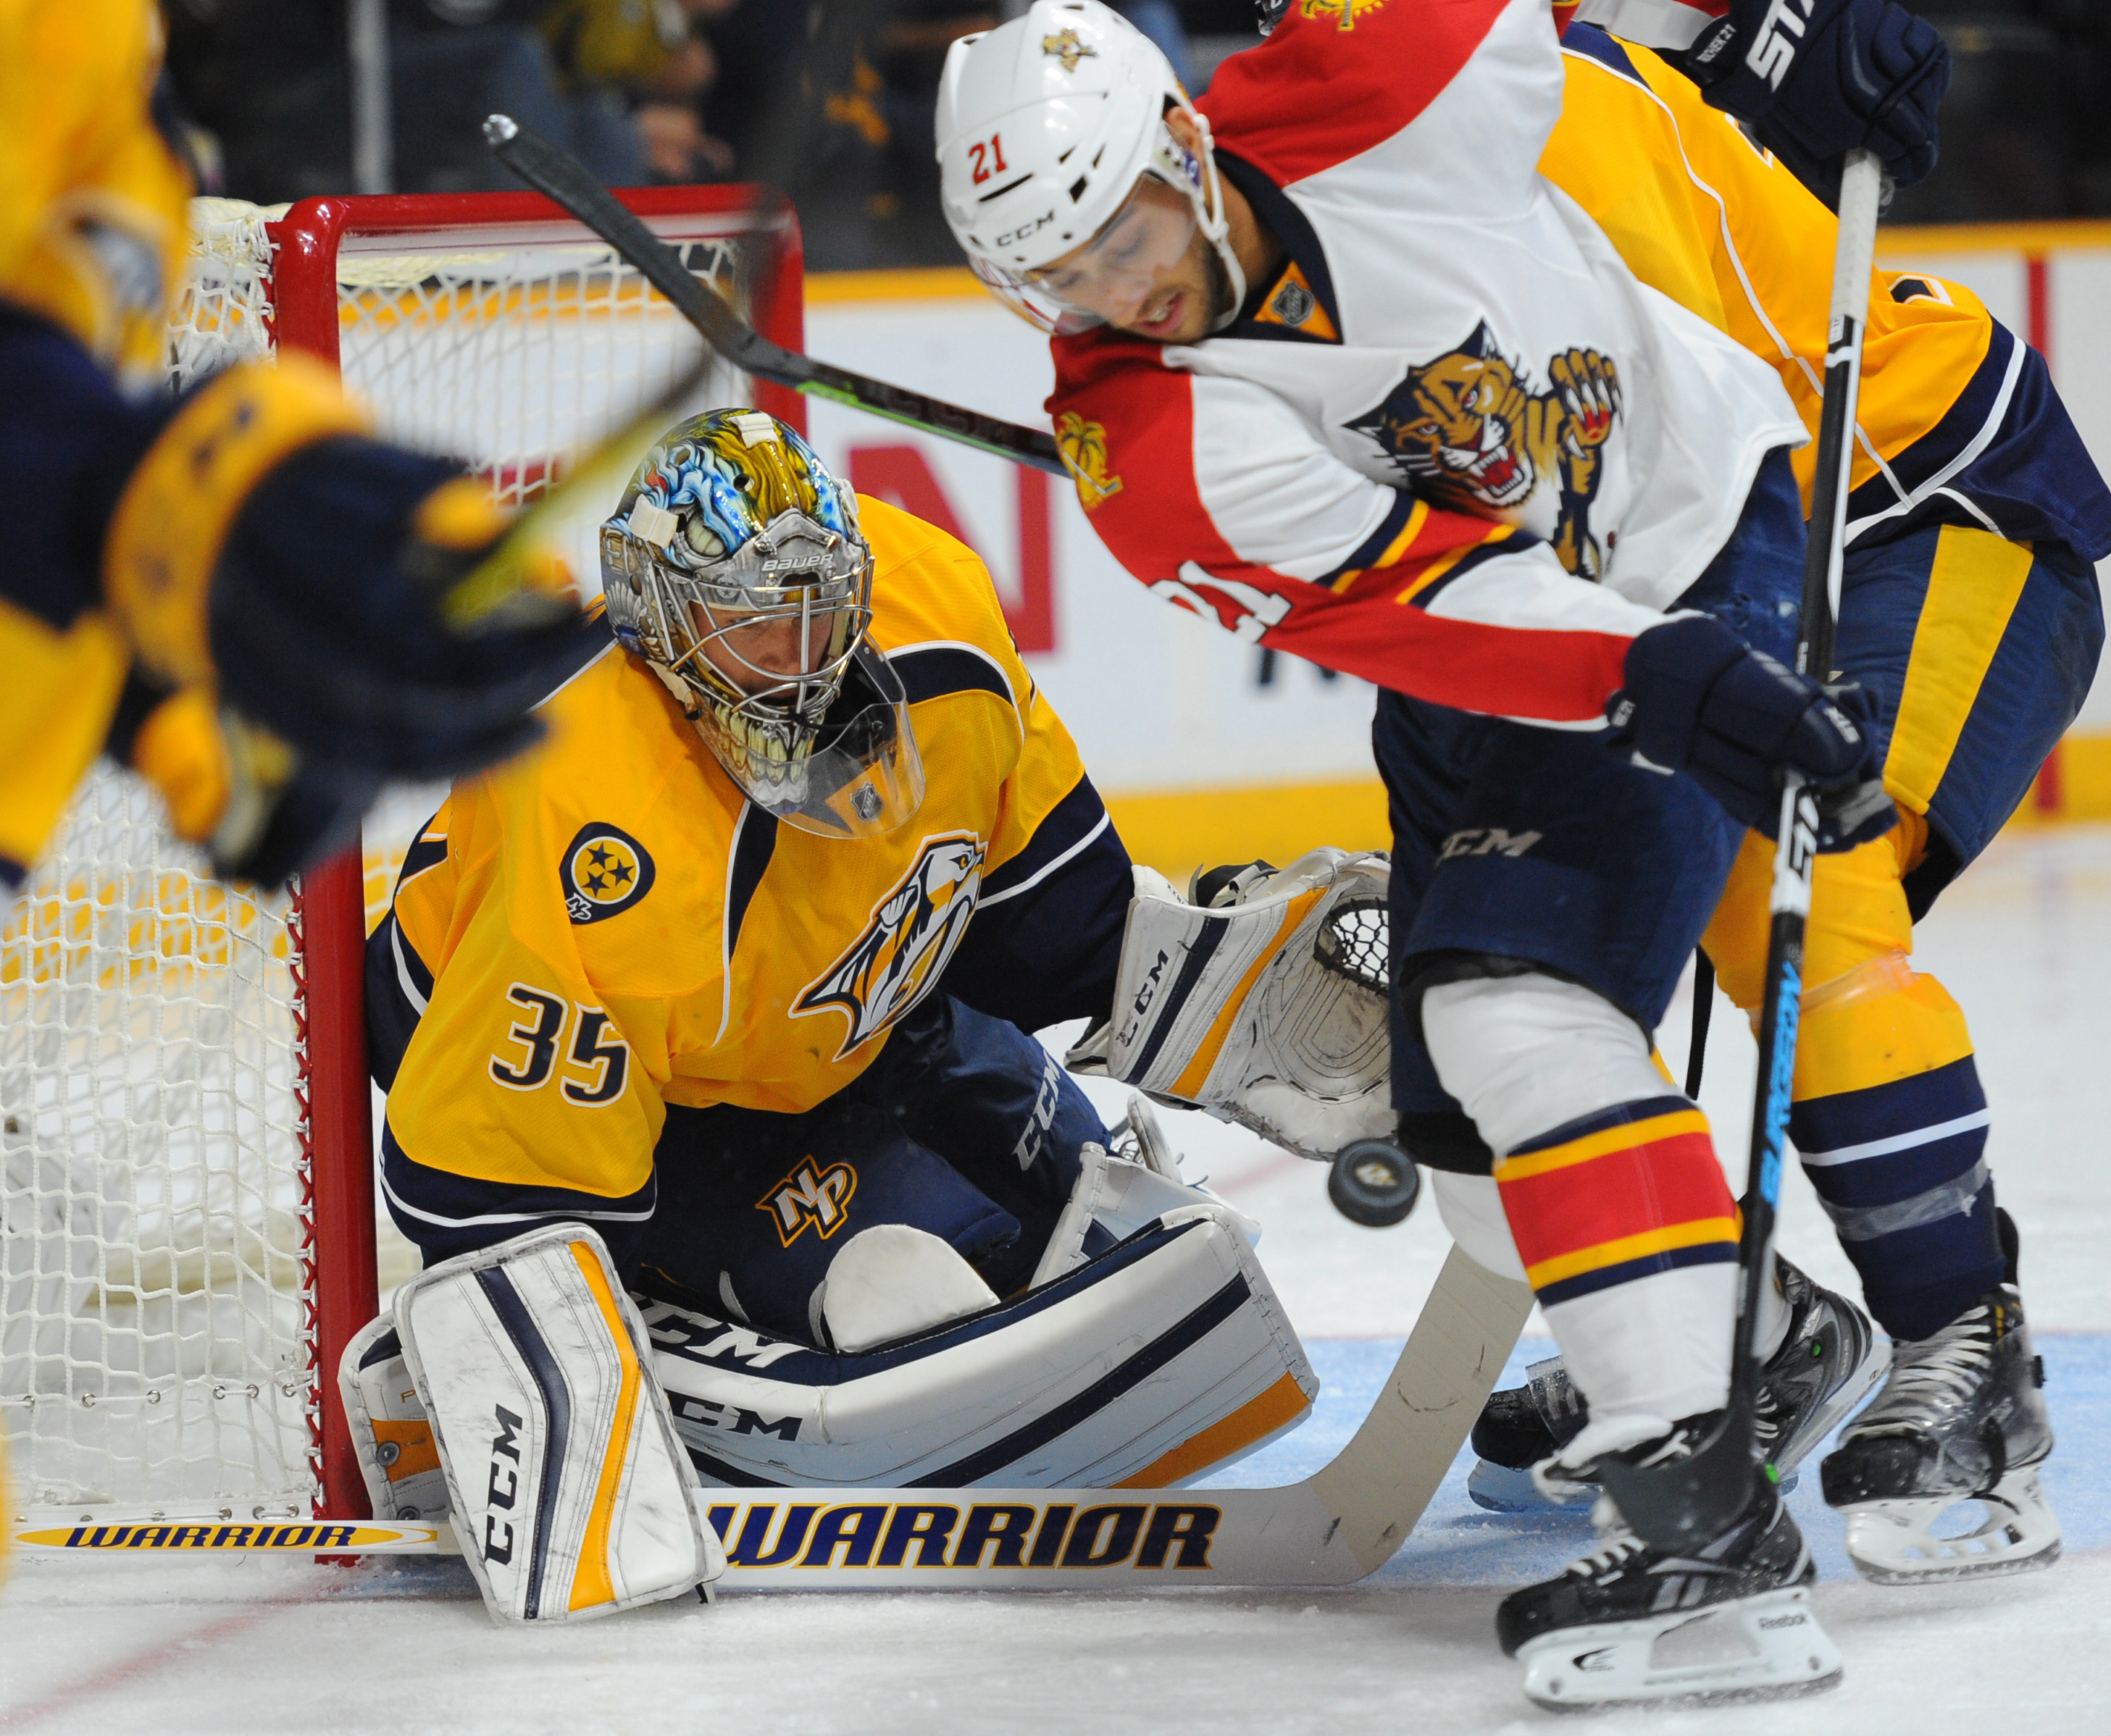 Even Rinne got in on the fun, playing a little over 25 minutes of hockey